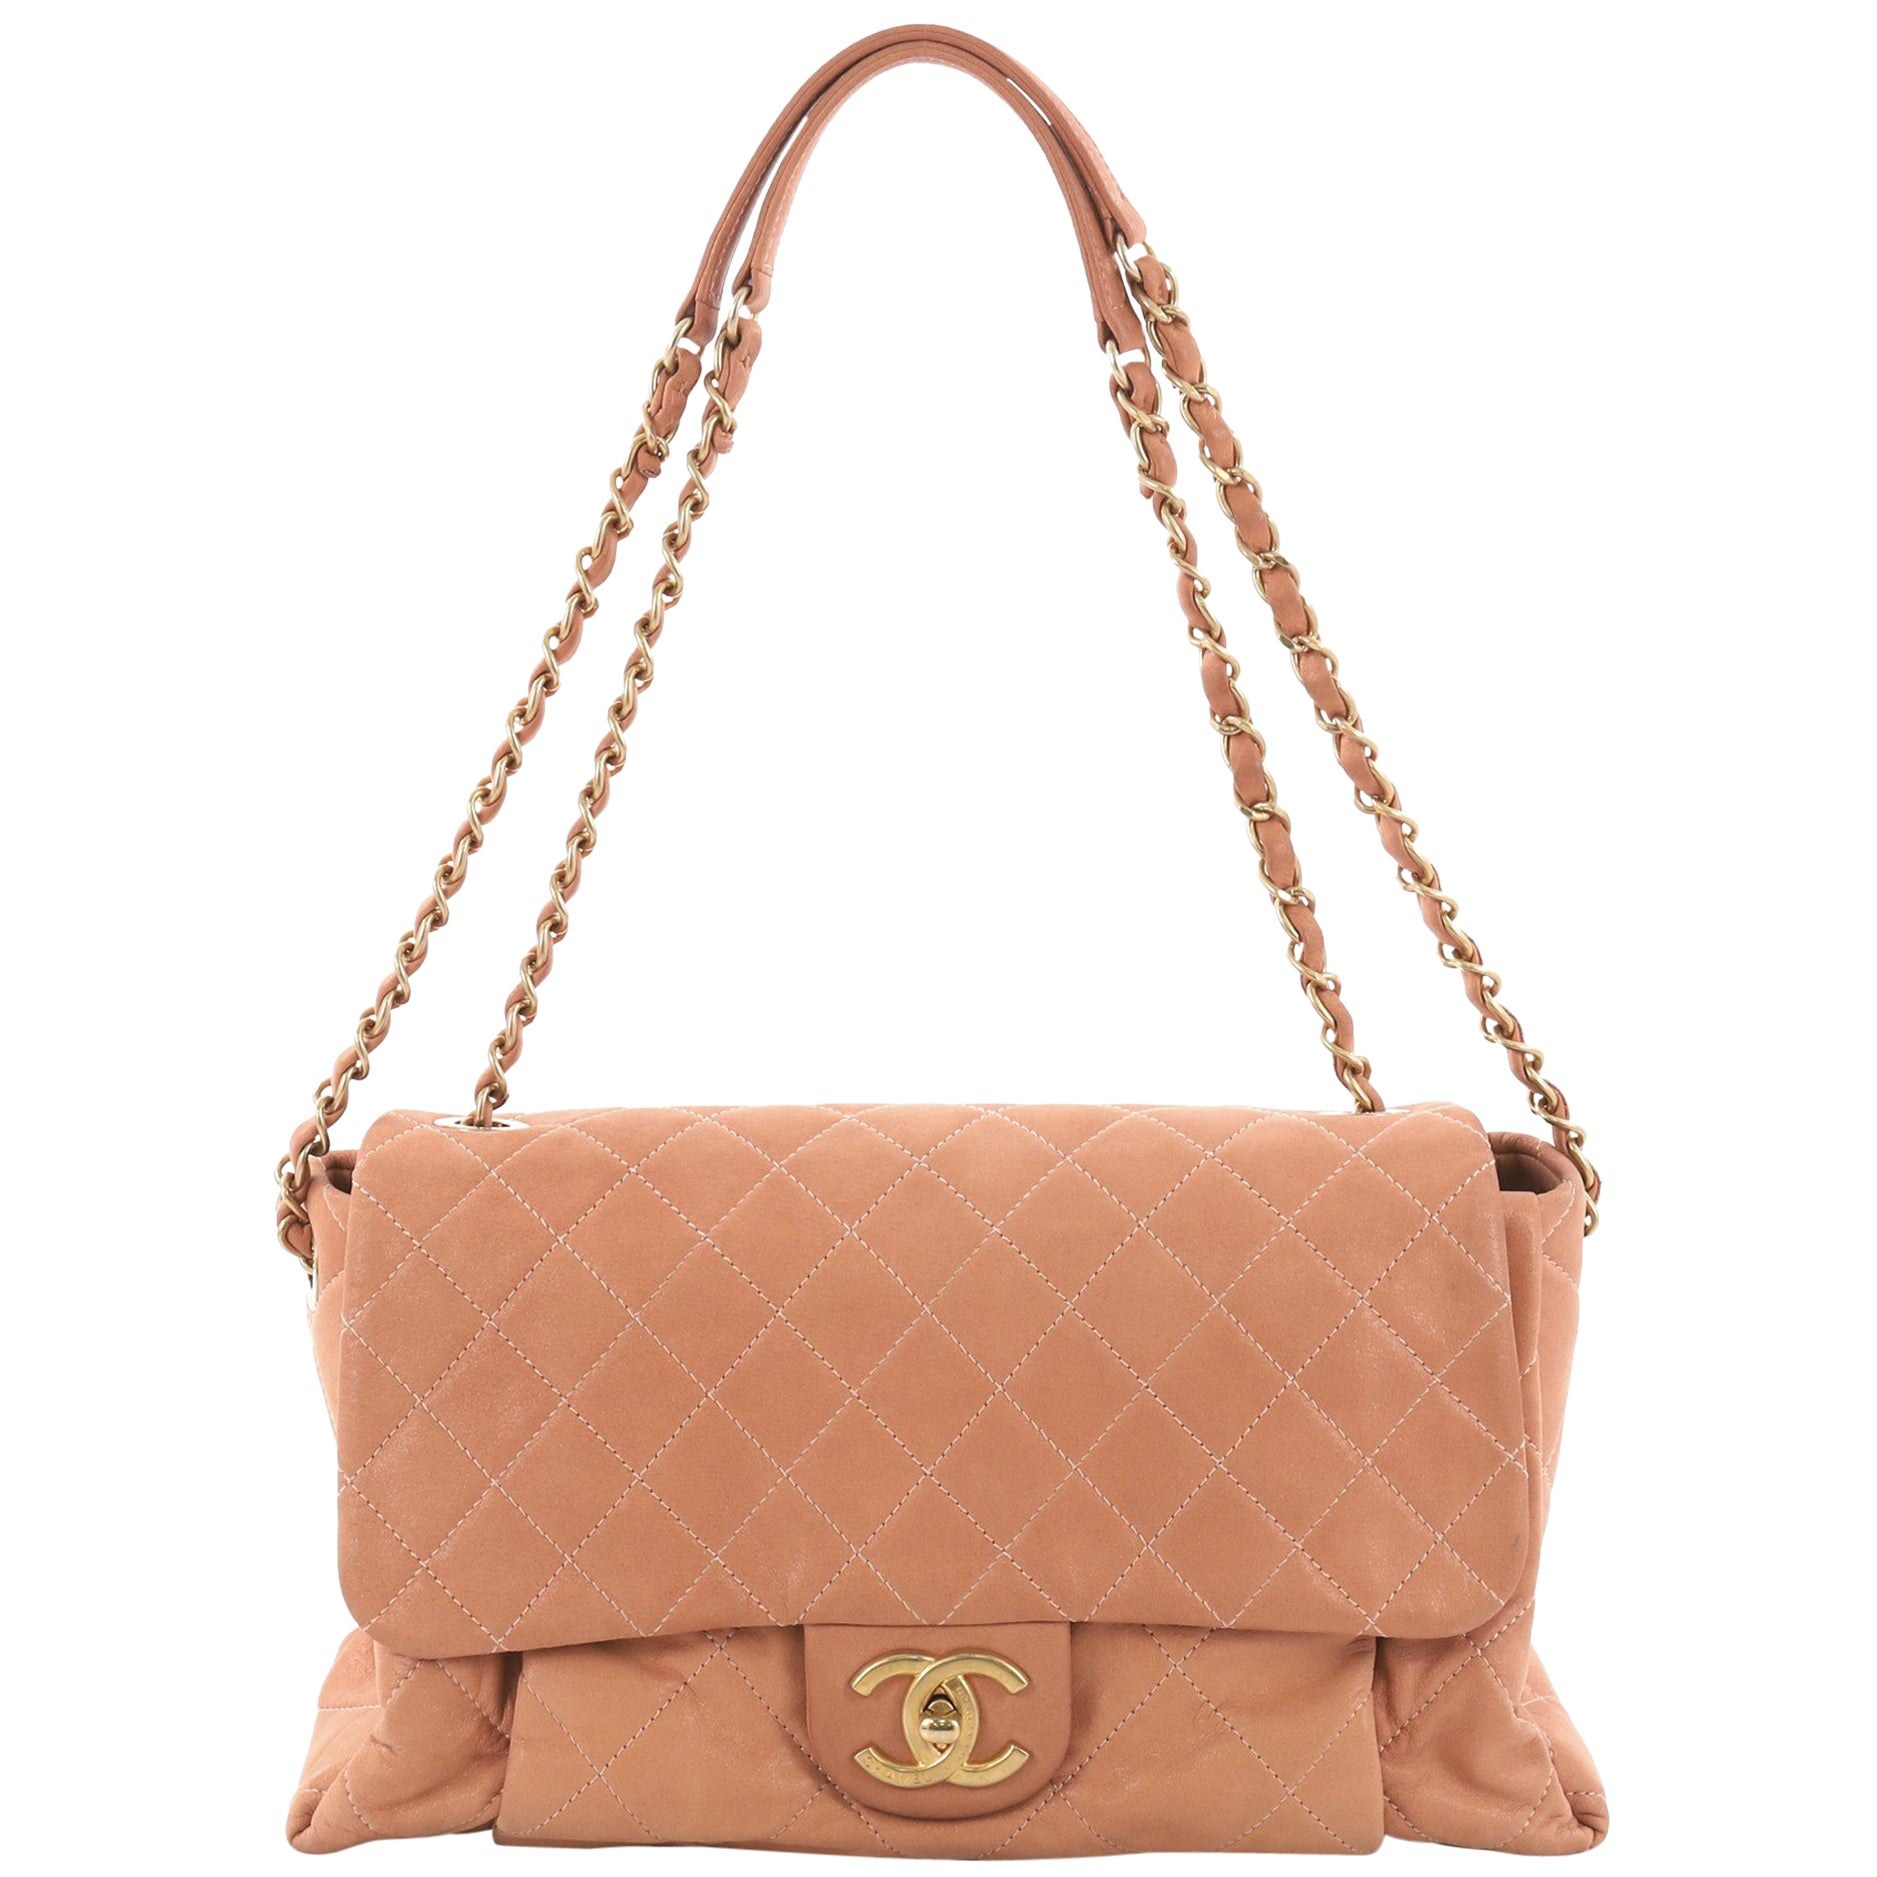 430cddfd9c33f6 Chanel Coco Pleats Flap Bag Quilted Iridescent Calfskin Maxi at 1stdibs